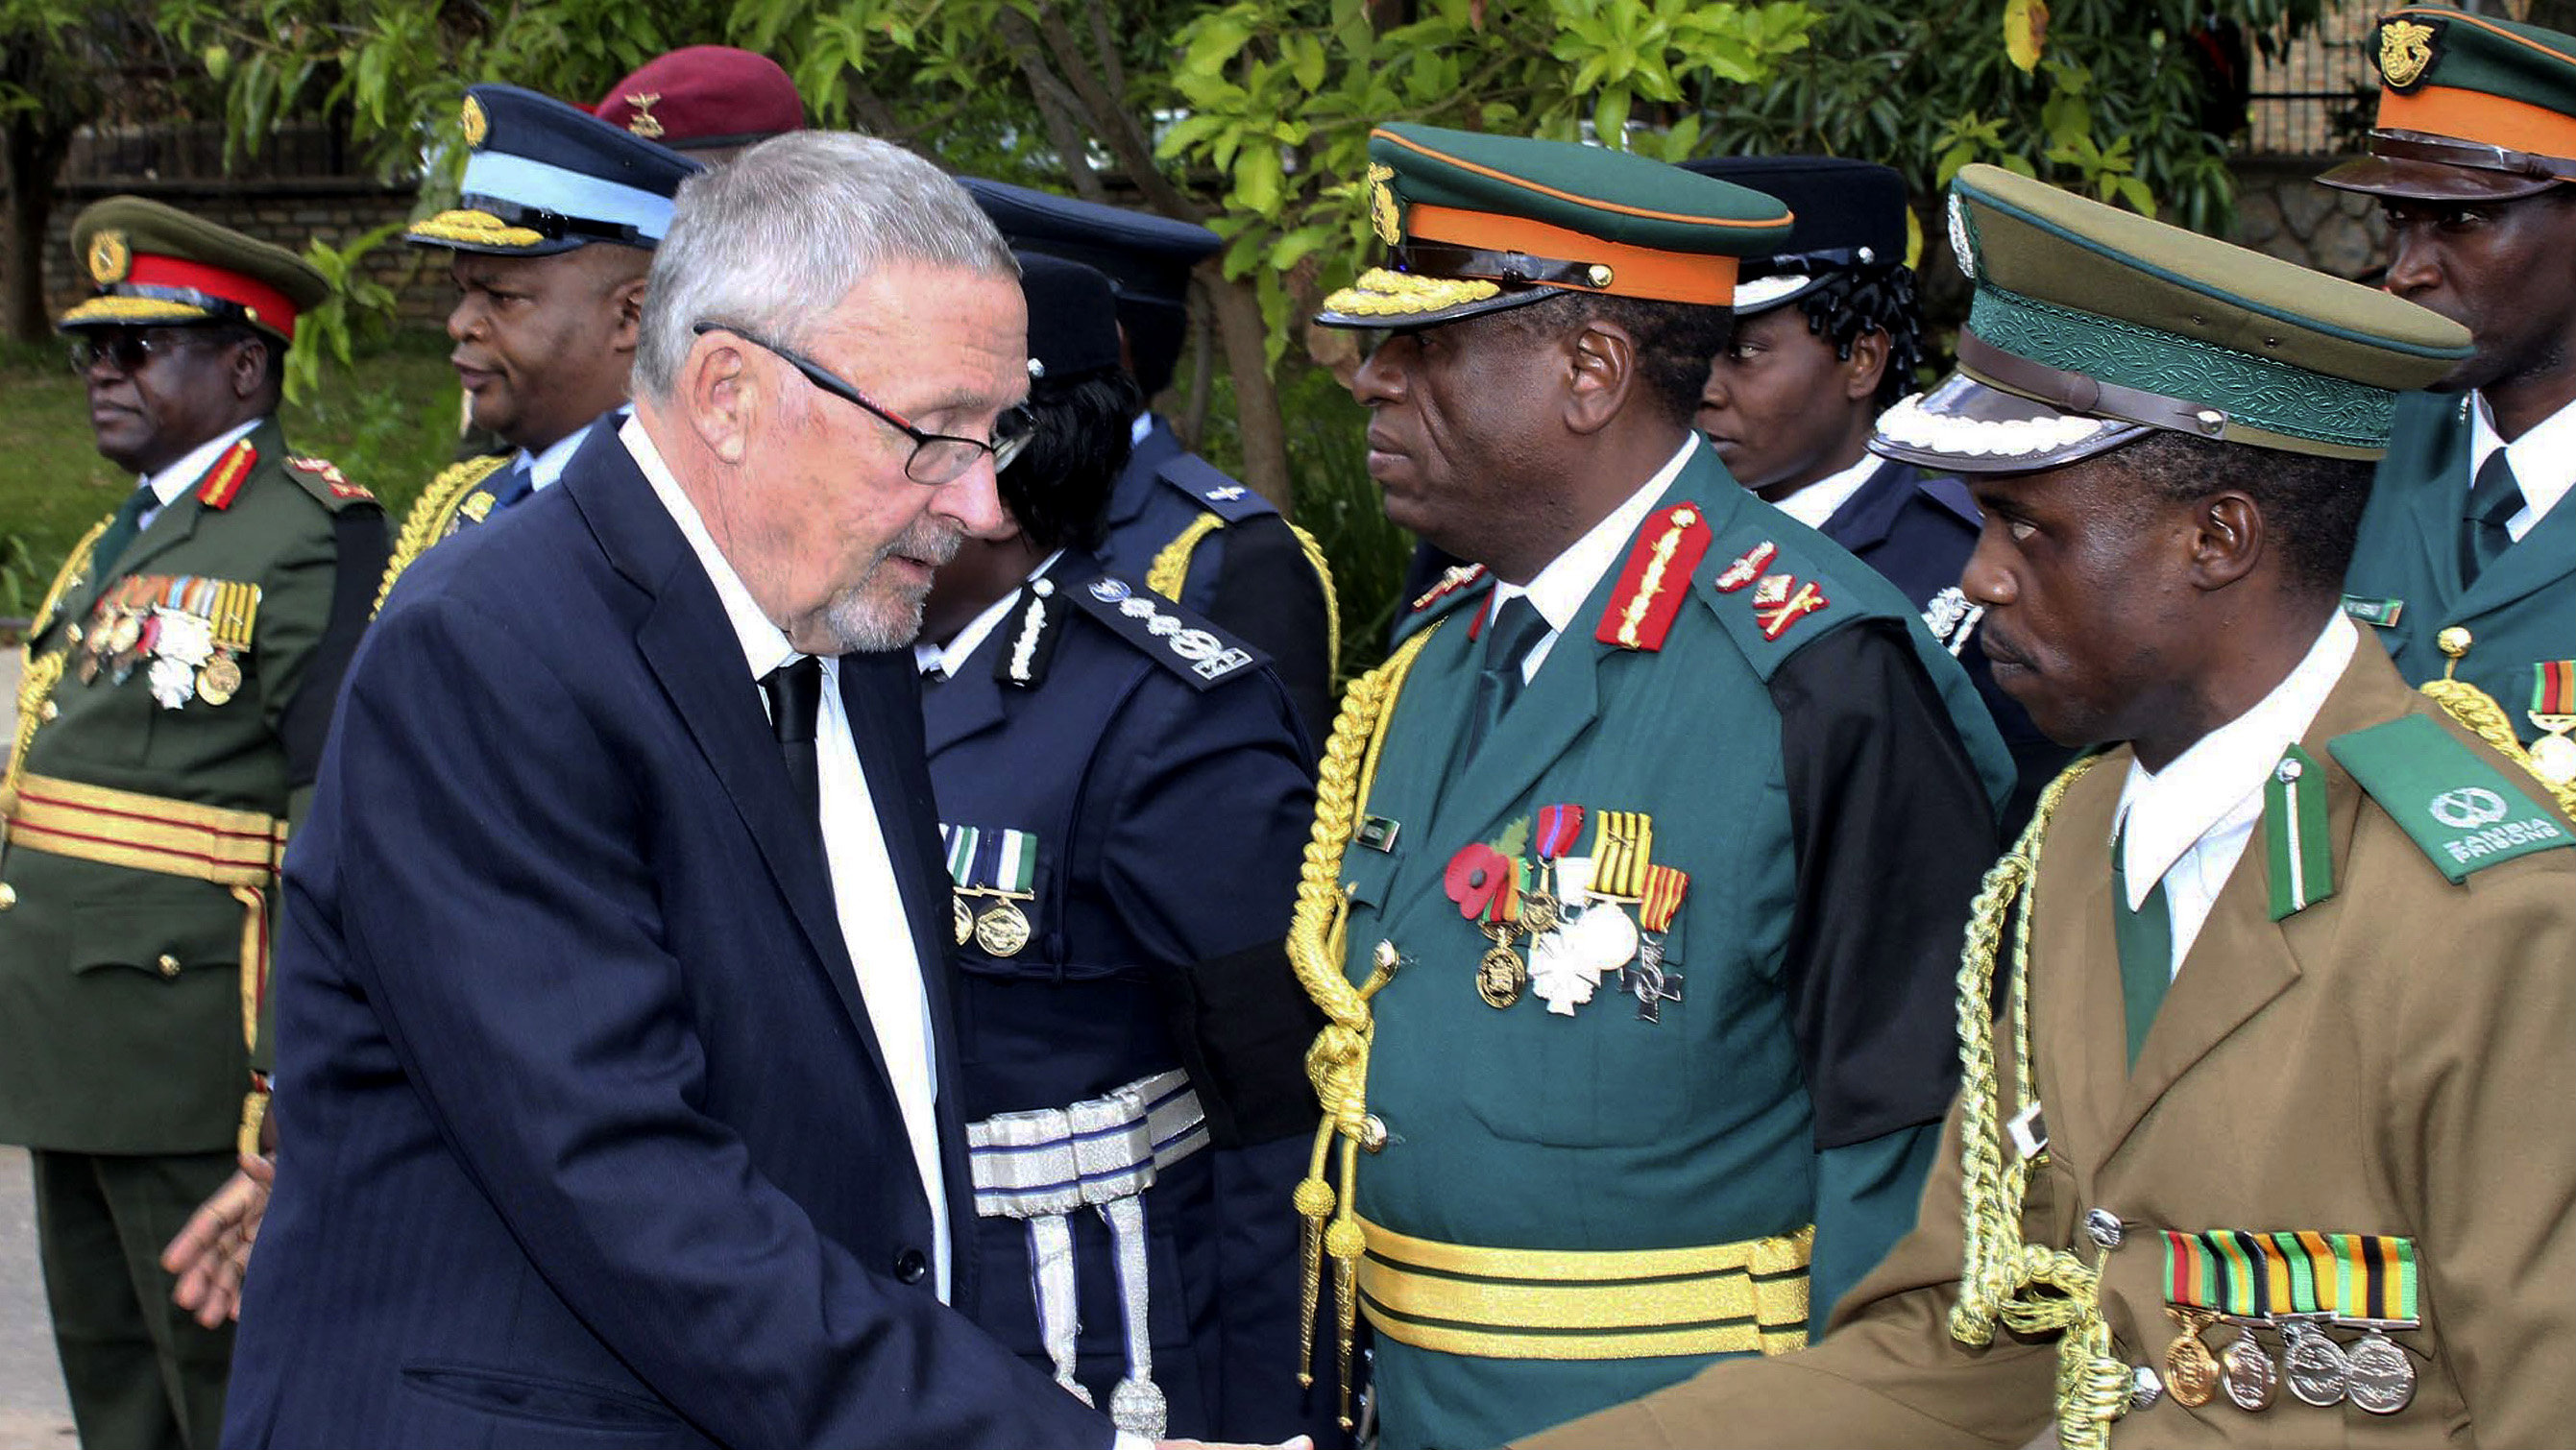 Zambia's vice president Guy Scott greets defense and security chiefs shortly after taking over as acting president, following the death in London on late Tuesday of President Michael Sata, Lusaka, Wednesday, Oct. 29, 2014. Scott, a white Zambian of Scottish descent, became the country's acting president on Wednesday, making him the first white leader of a sub-Saharan African nation since F.W. de Klerk, the apartheid-era head of South Africa who was voted out of power in 1994.